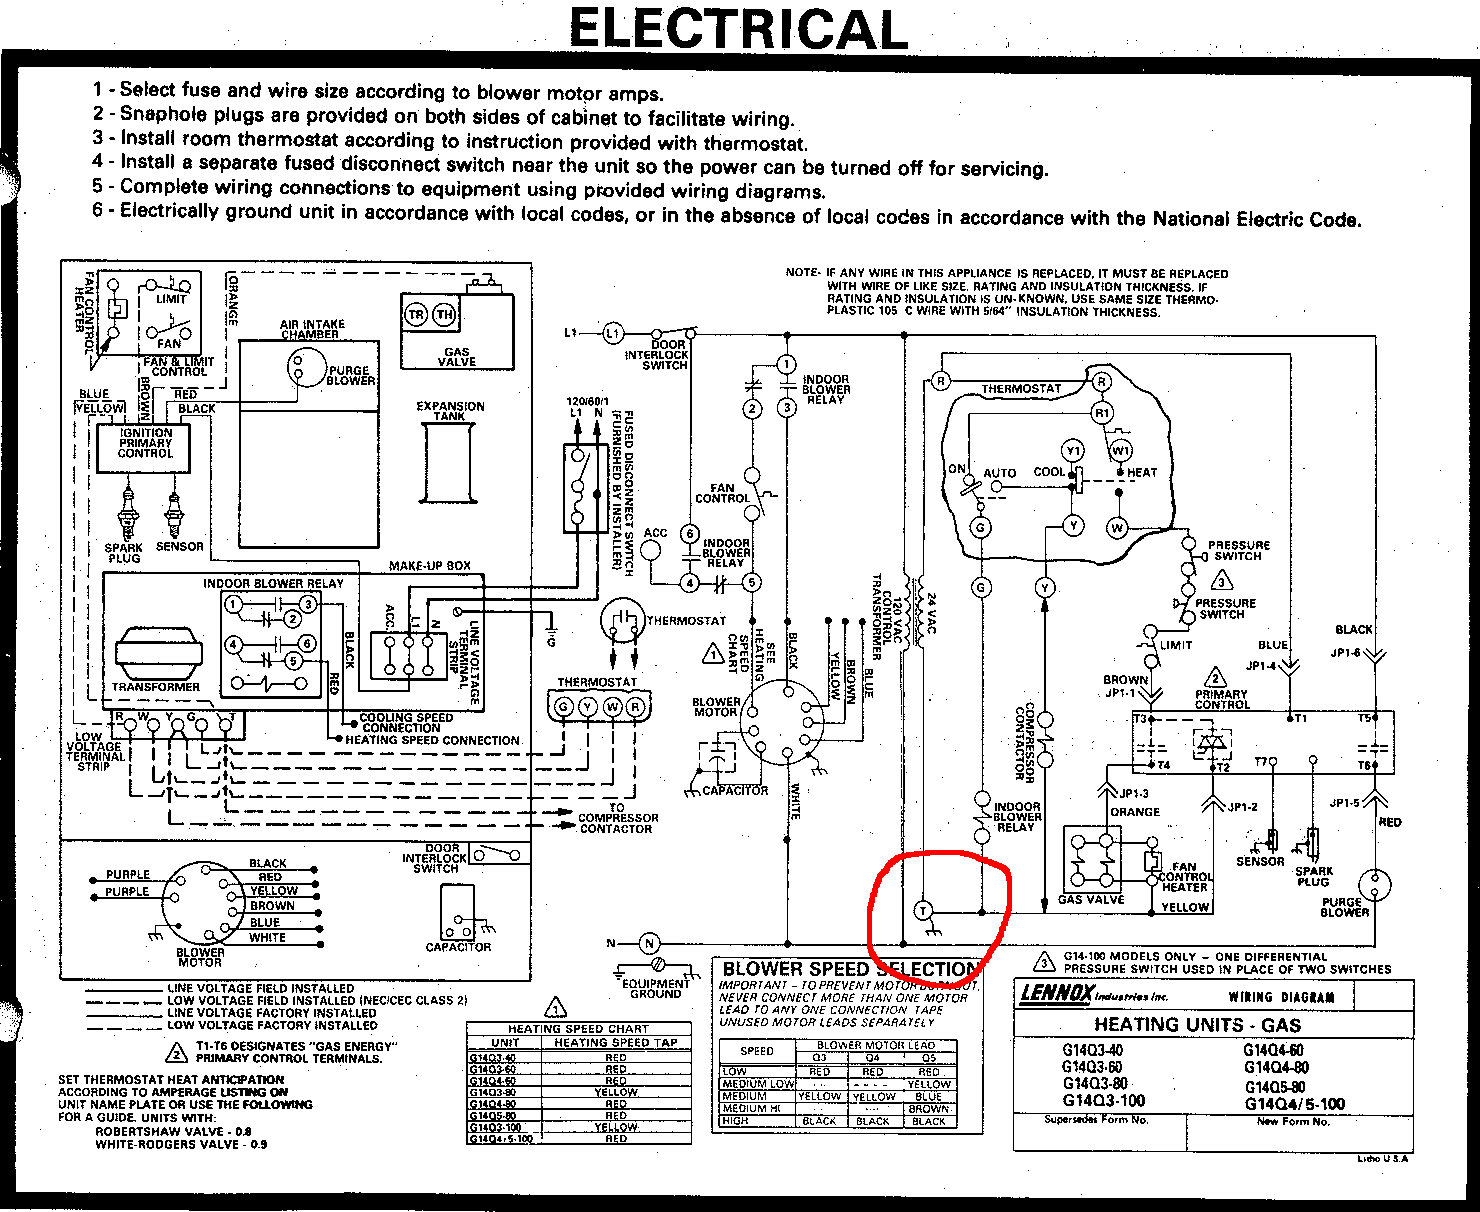 Oil Furnace Wiring Diagram For Nest | Wiring Diagram - Nest Wiring Diagram Furnace